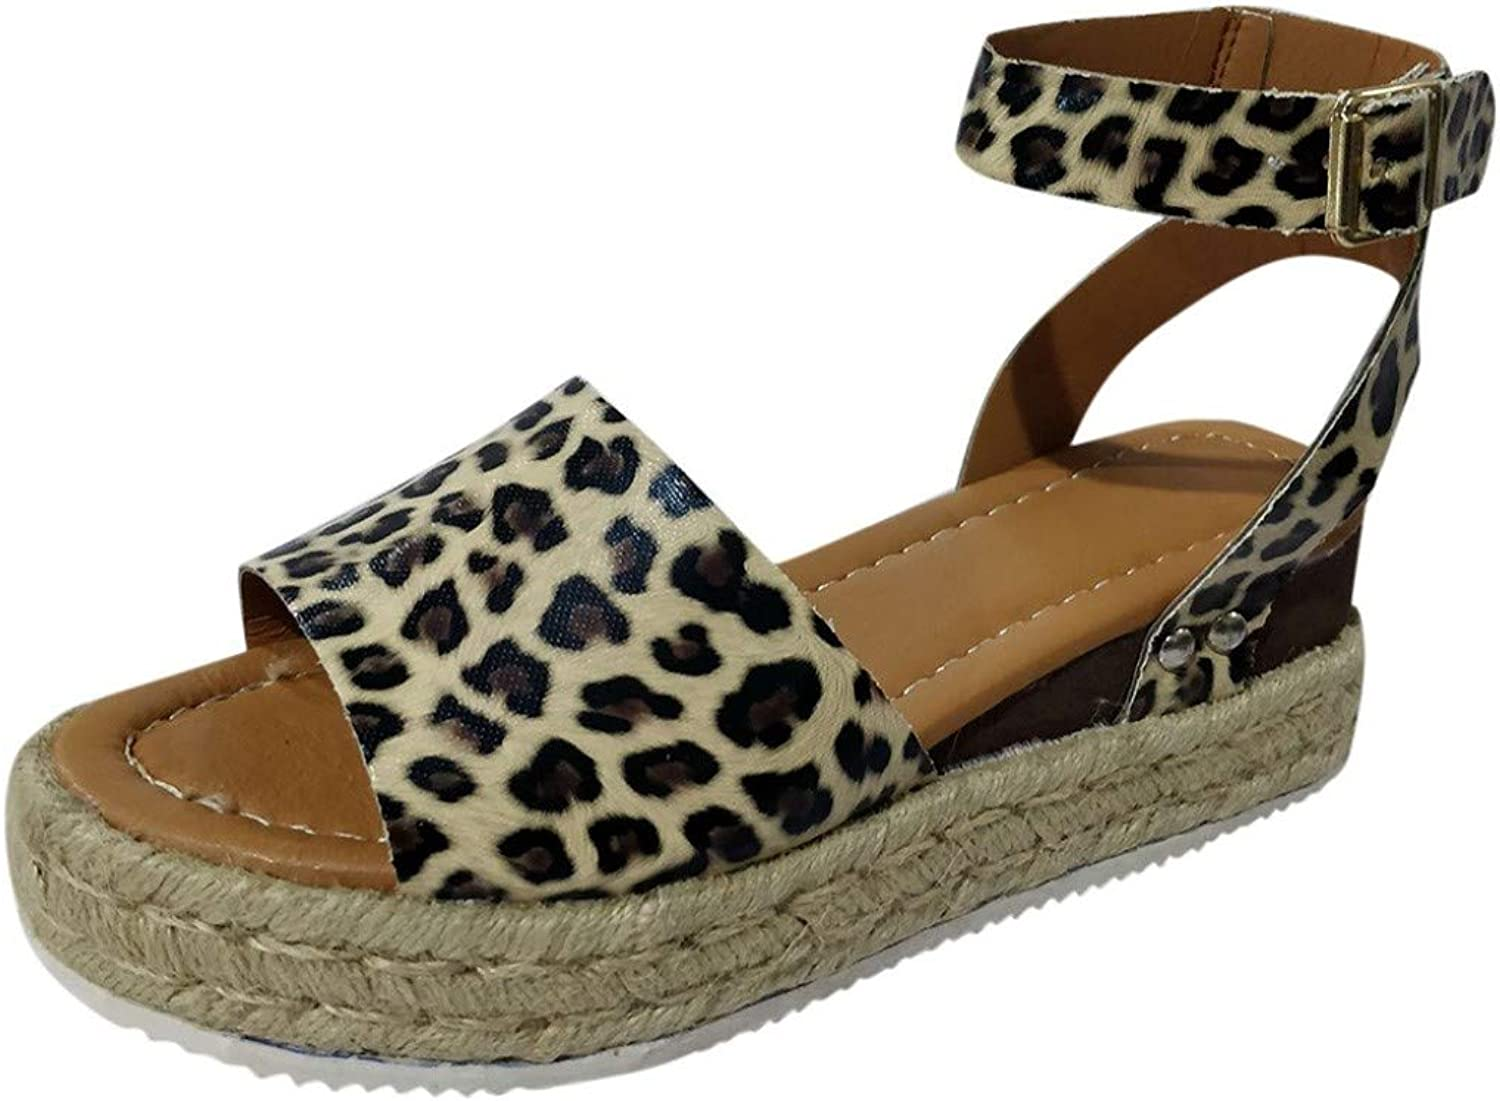 T-JULY Women Summer Fashion Sandals Buckle Strap Wedges Leopard Retro Peep Toe Sandals Casual shoes Low Heels Sandal